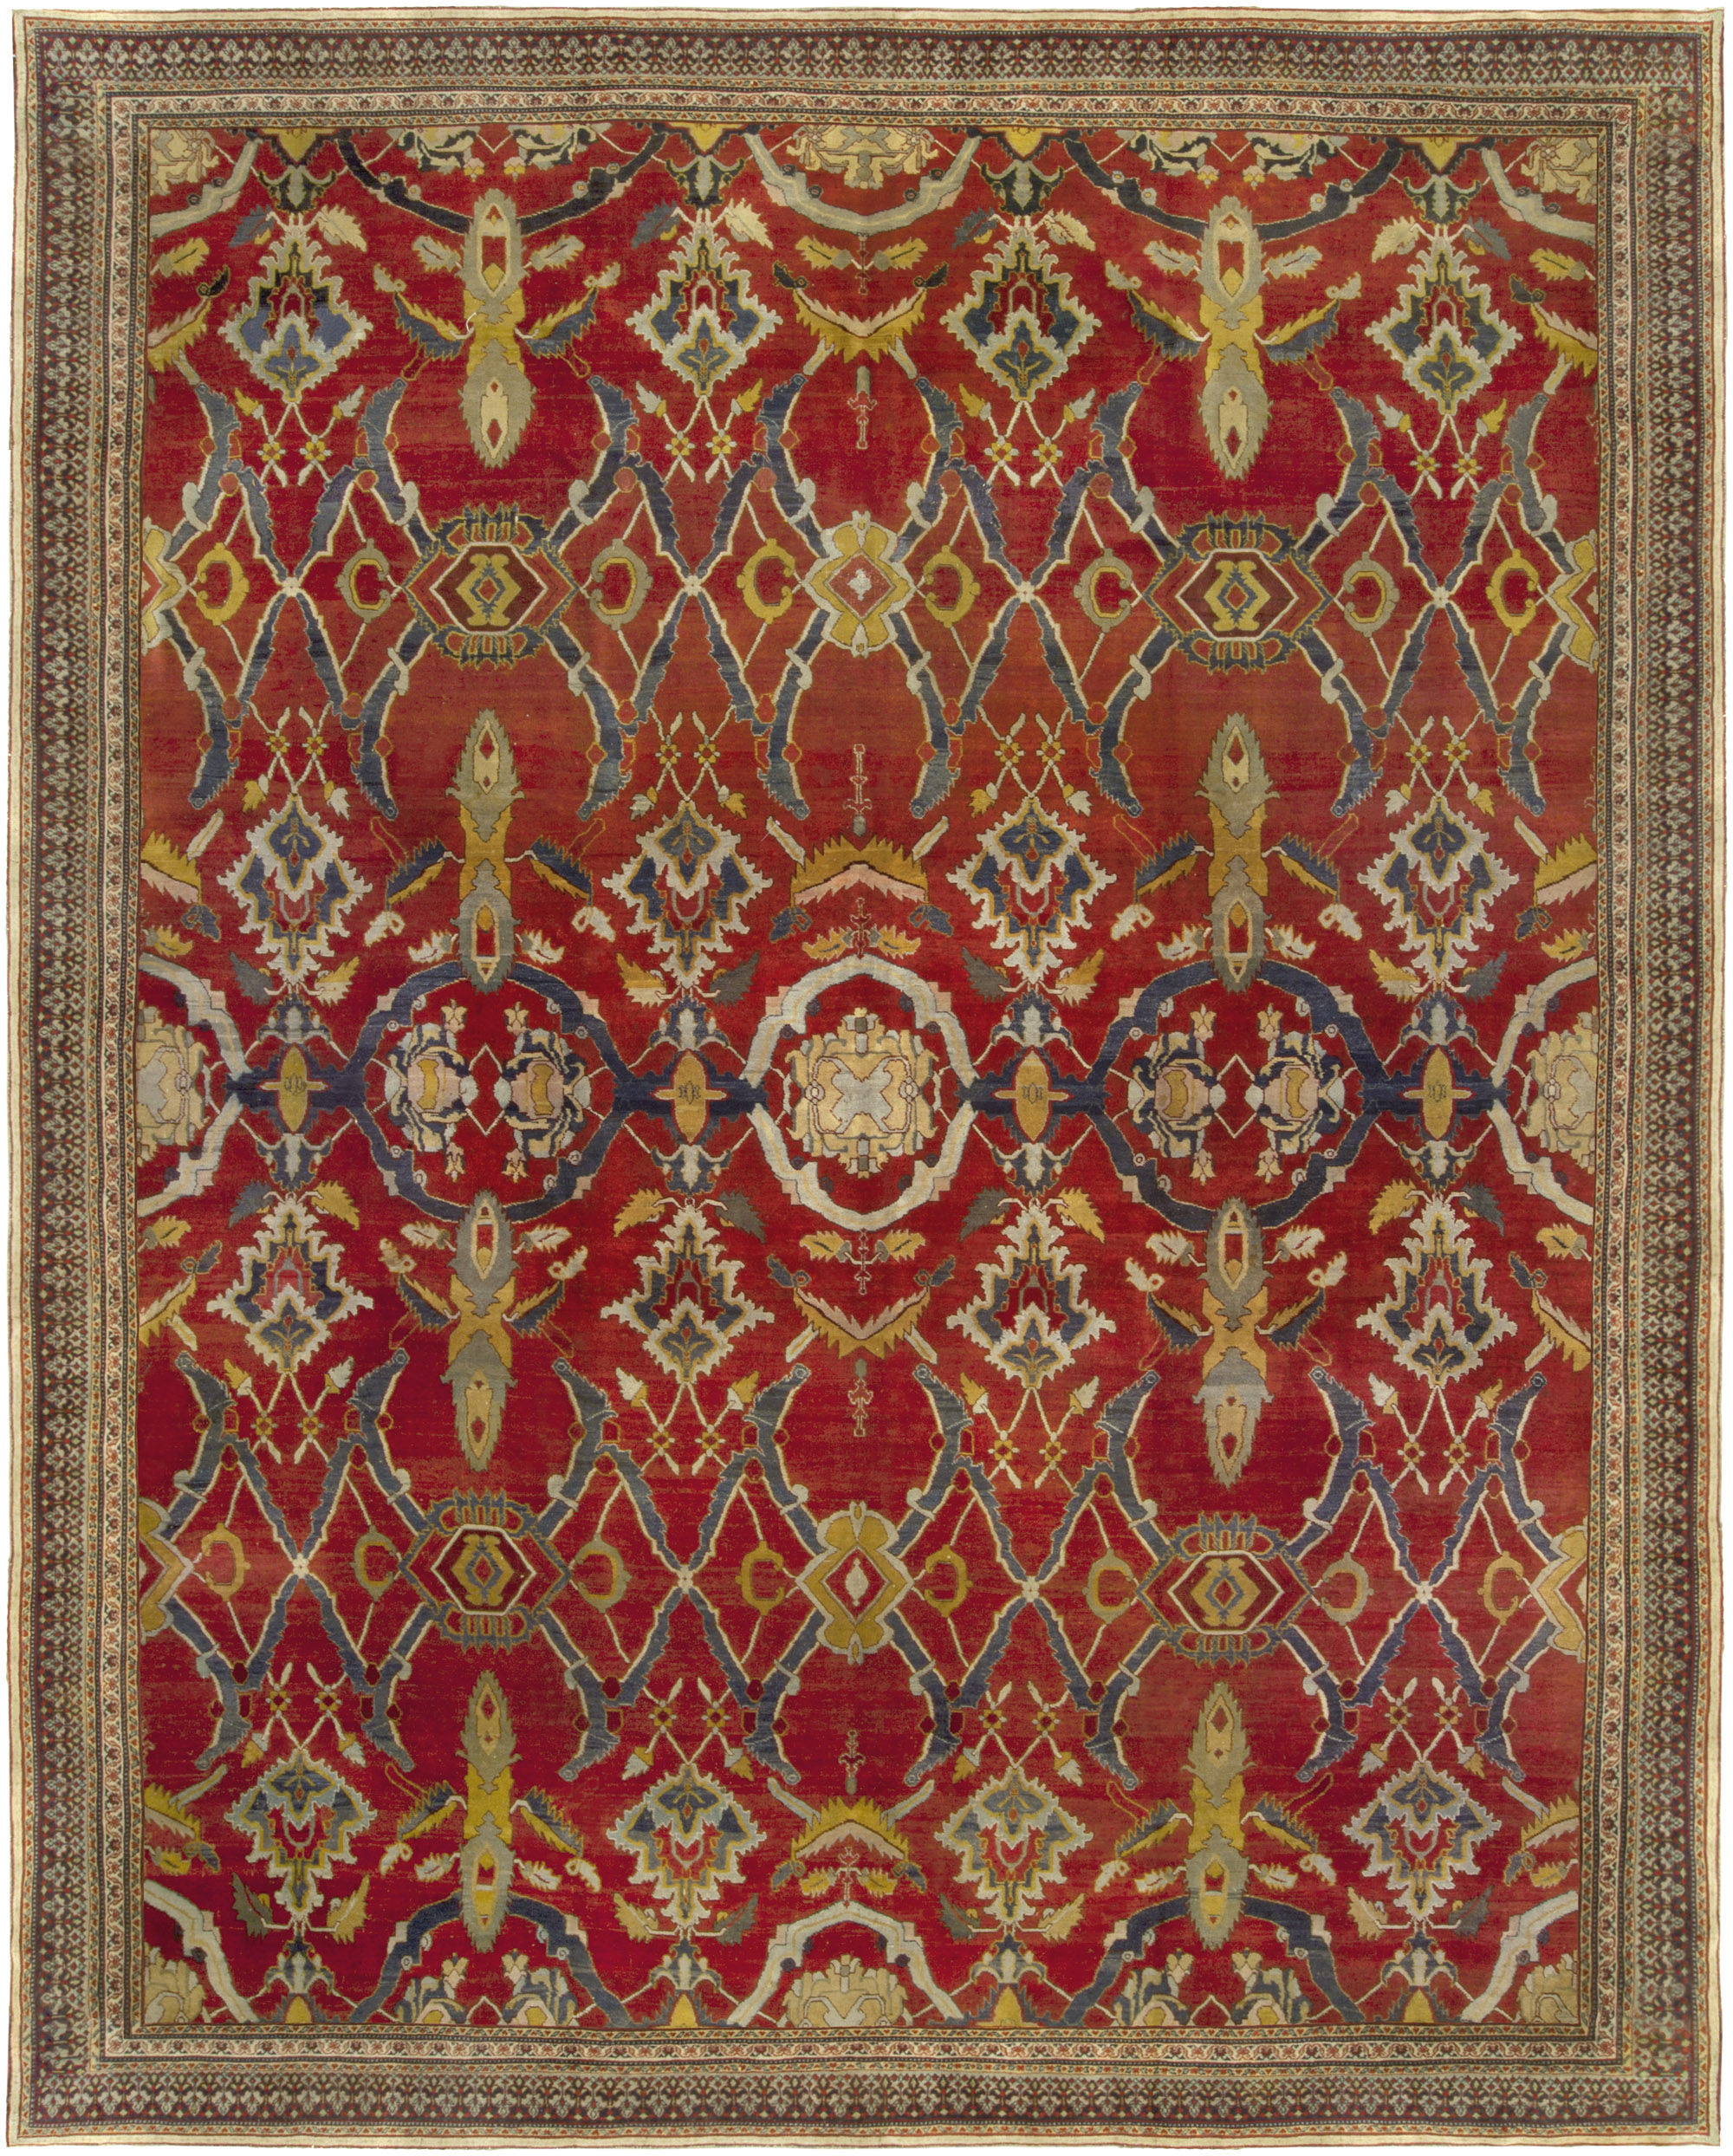 Chinese Rug Dealers: Antique Indian Agra Rug BB5109 By Doris Leslie Blau